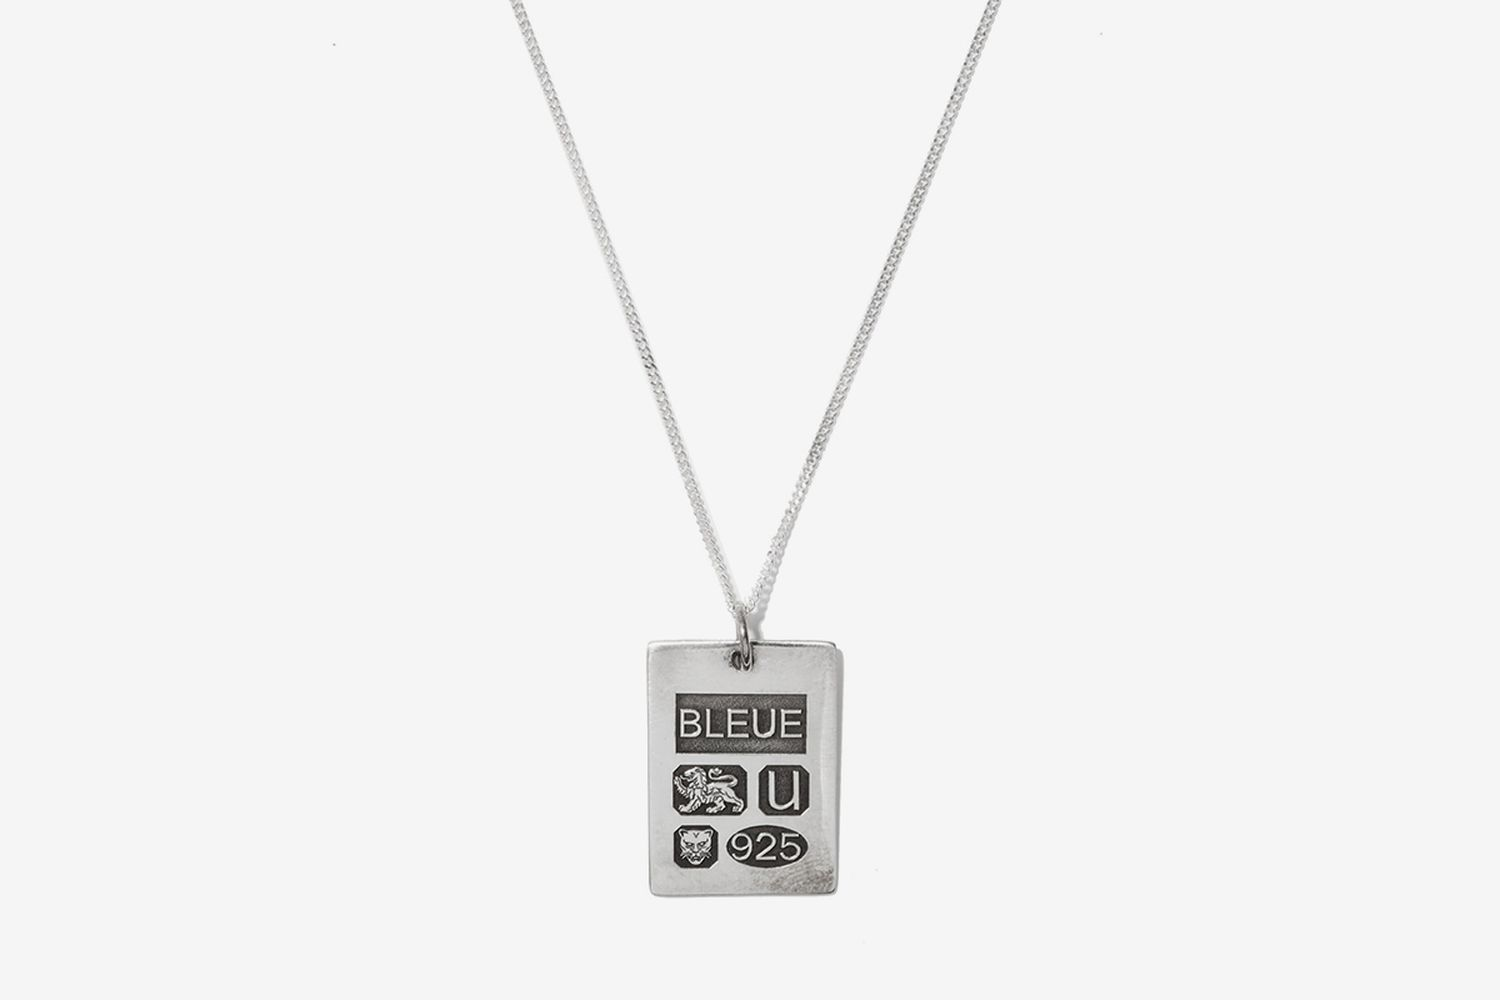 Grandfather Sterling-Silver Pendant Necklace